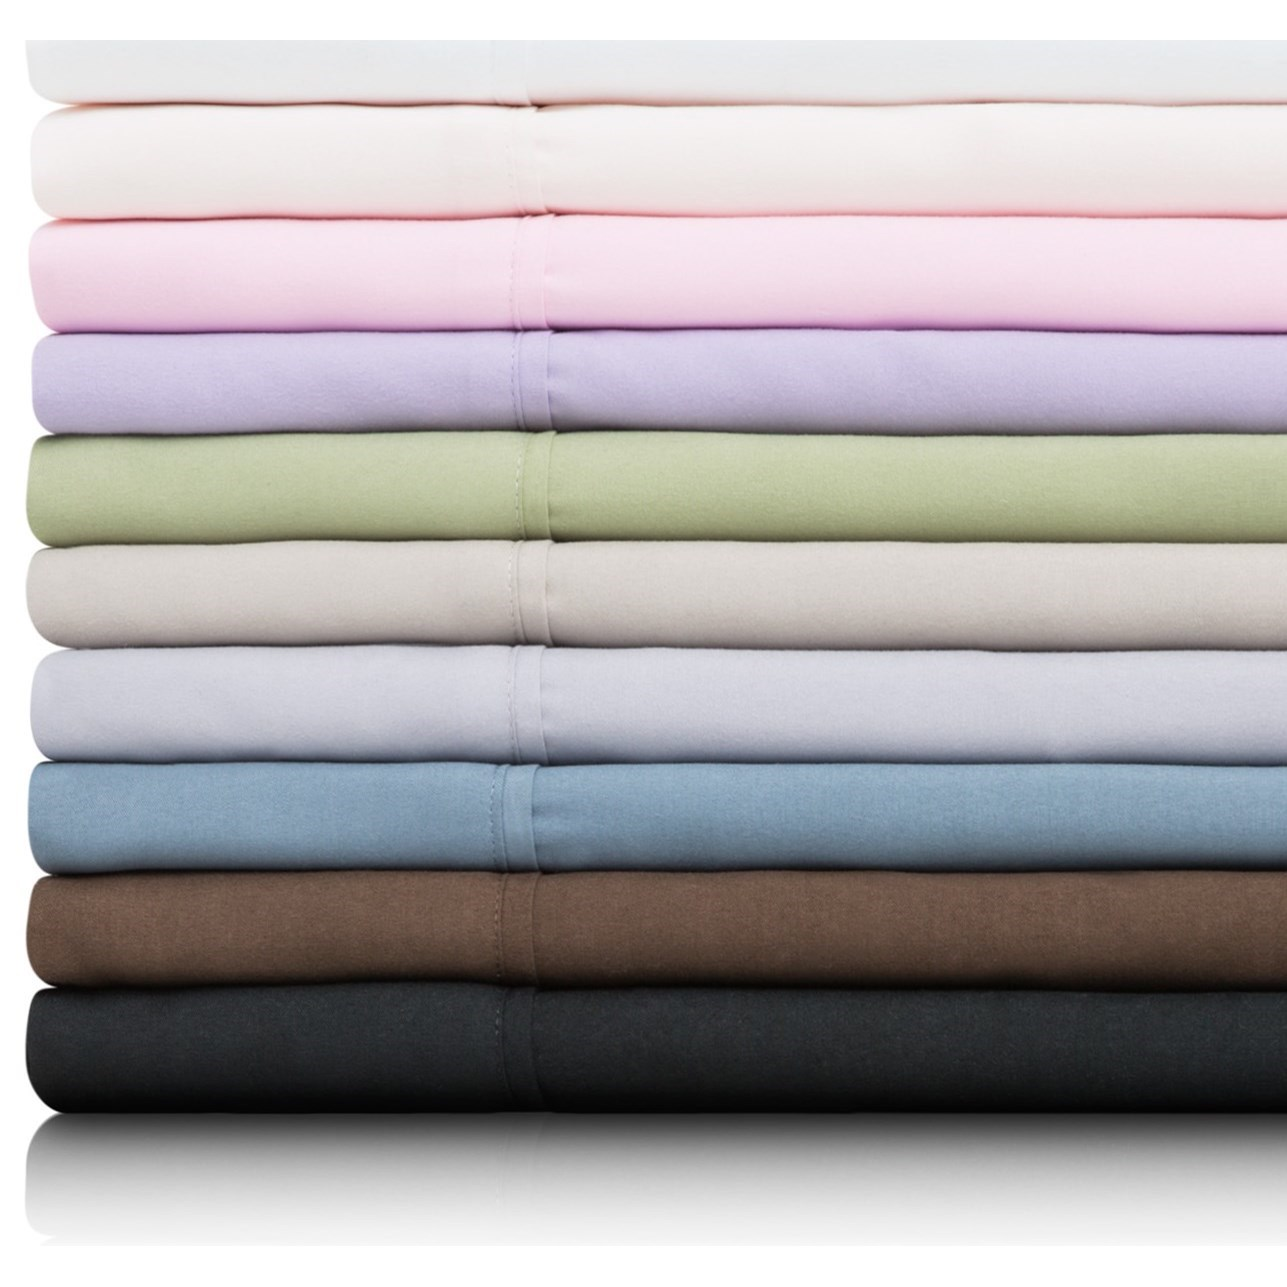 Brushed Microfiber Cot Woven™ Brushed Microfiber Cot Sheet Set by Malouf at Northeast Factory Direct